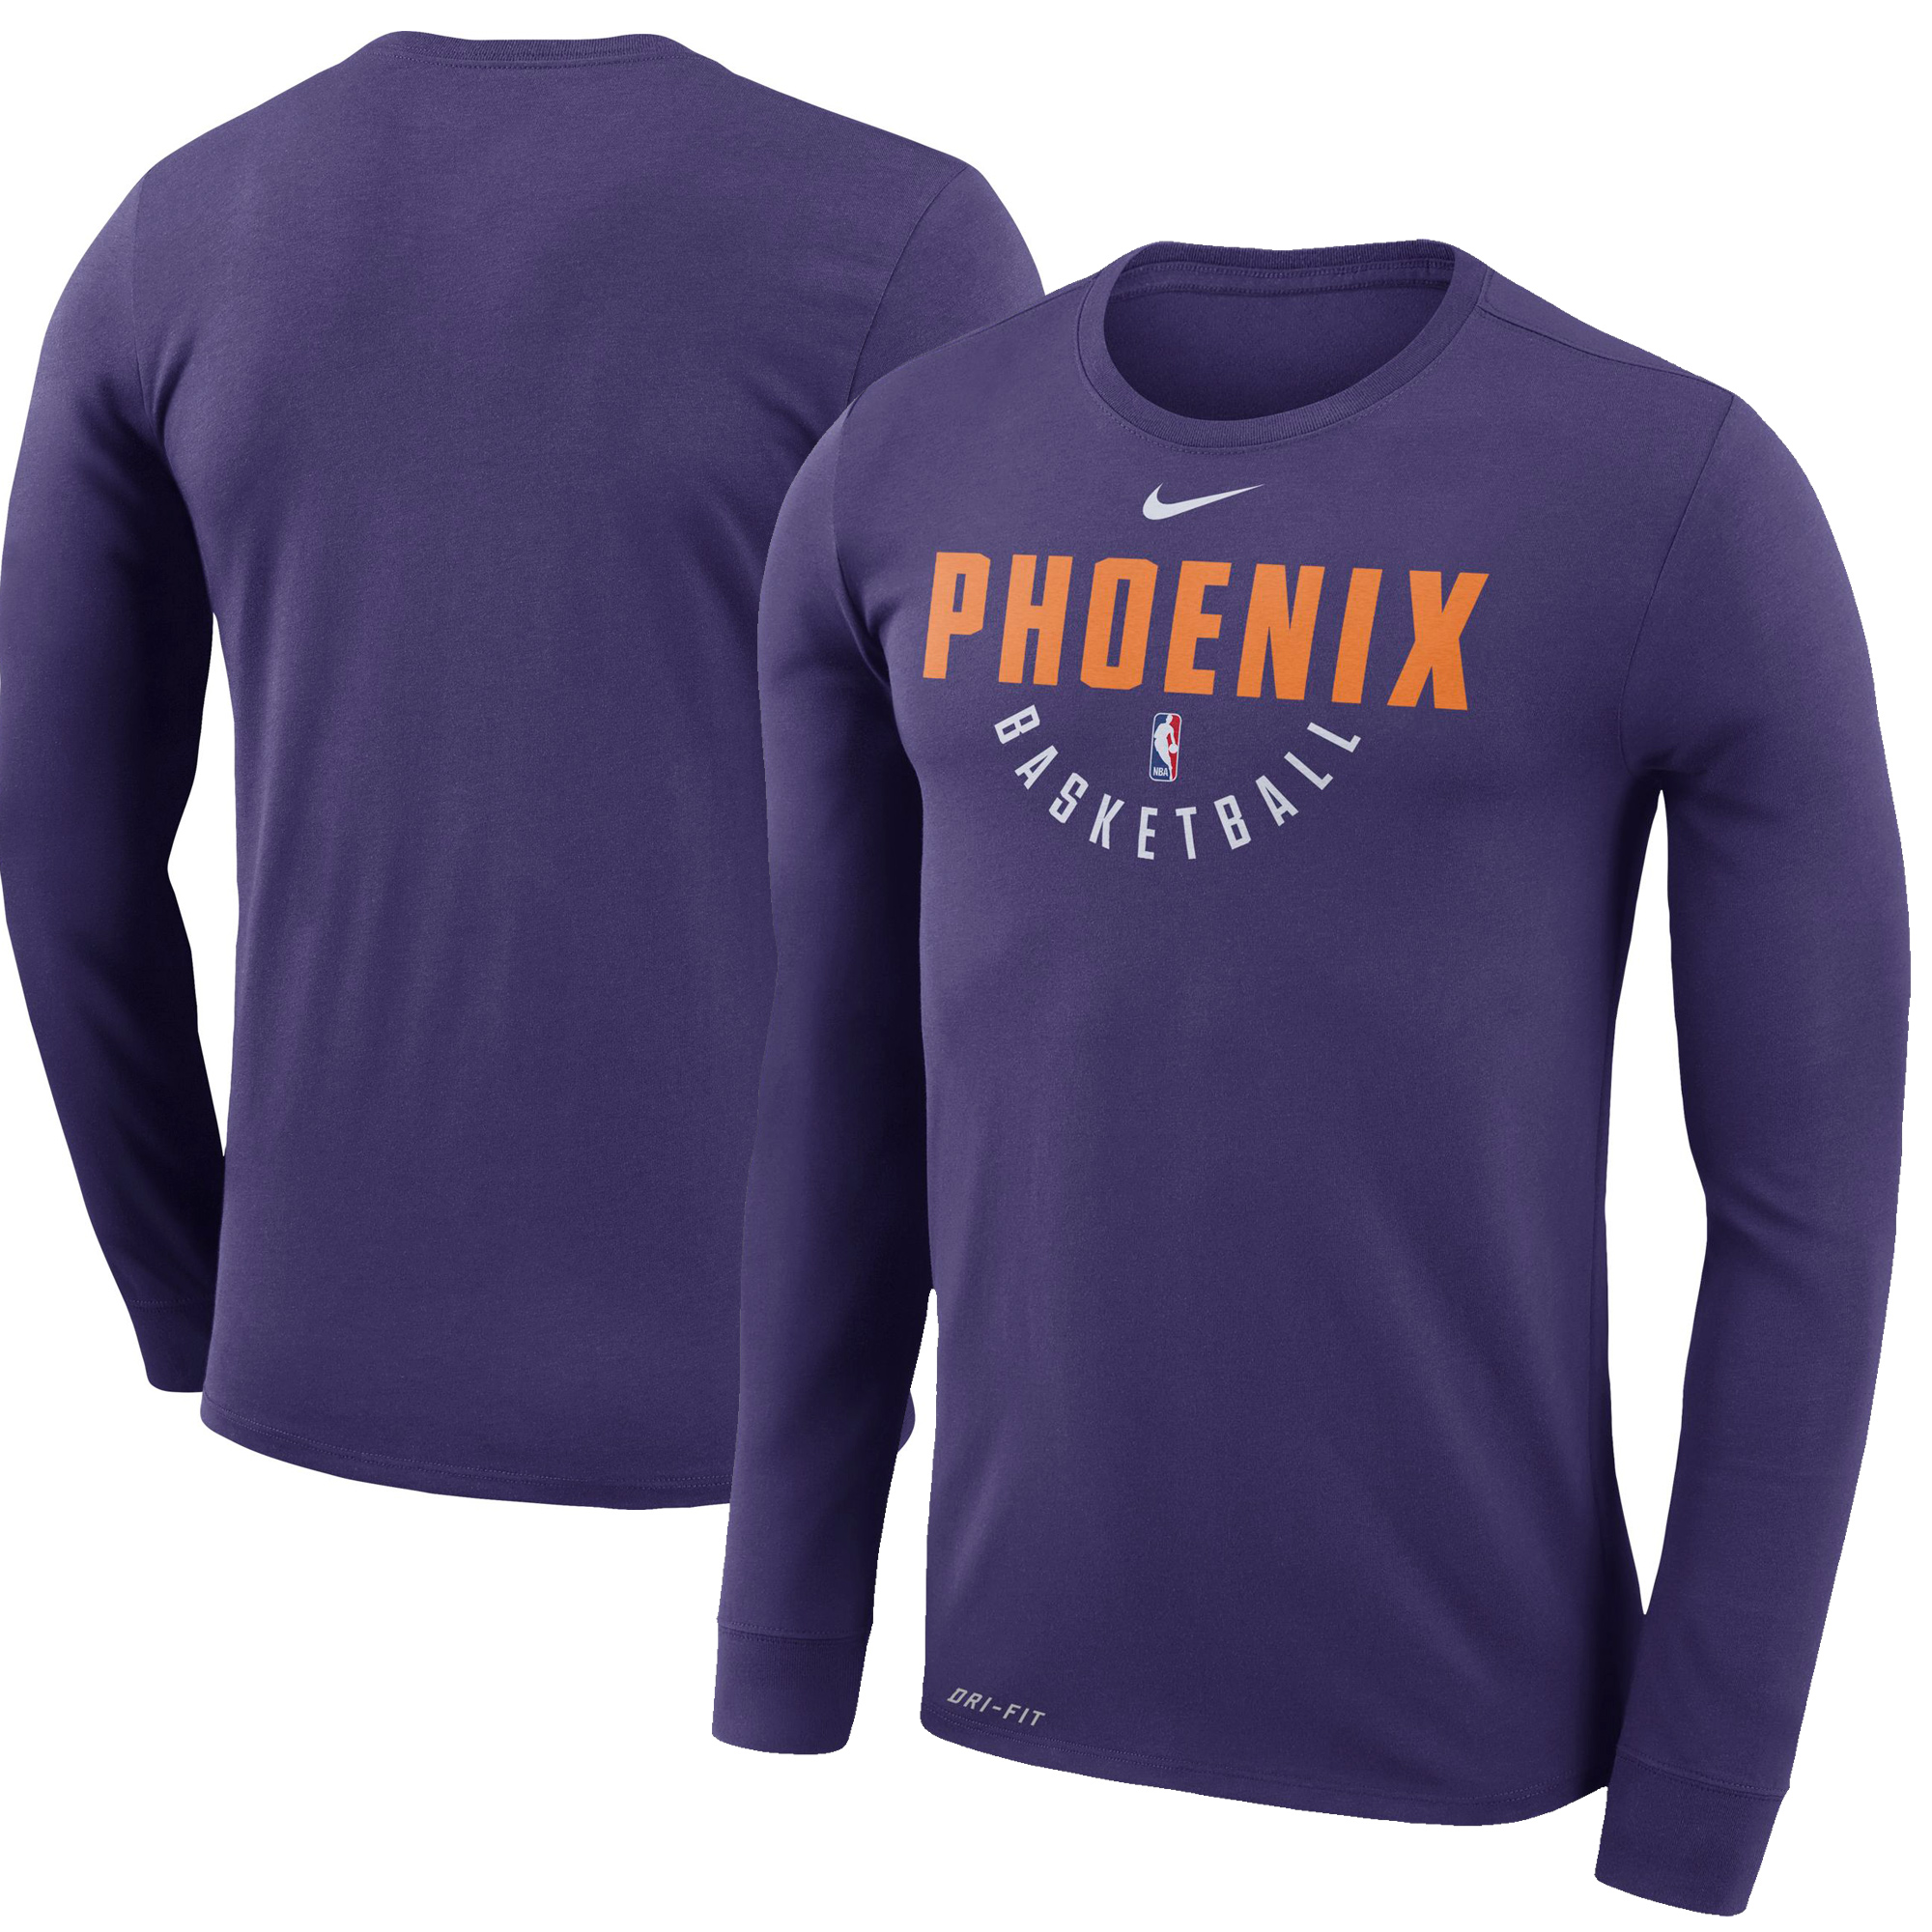 Phoenix Suns Nike Practice Long Sleeve Performance T-Shirt - Purple